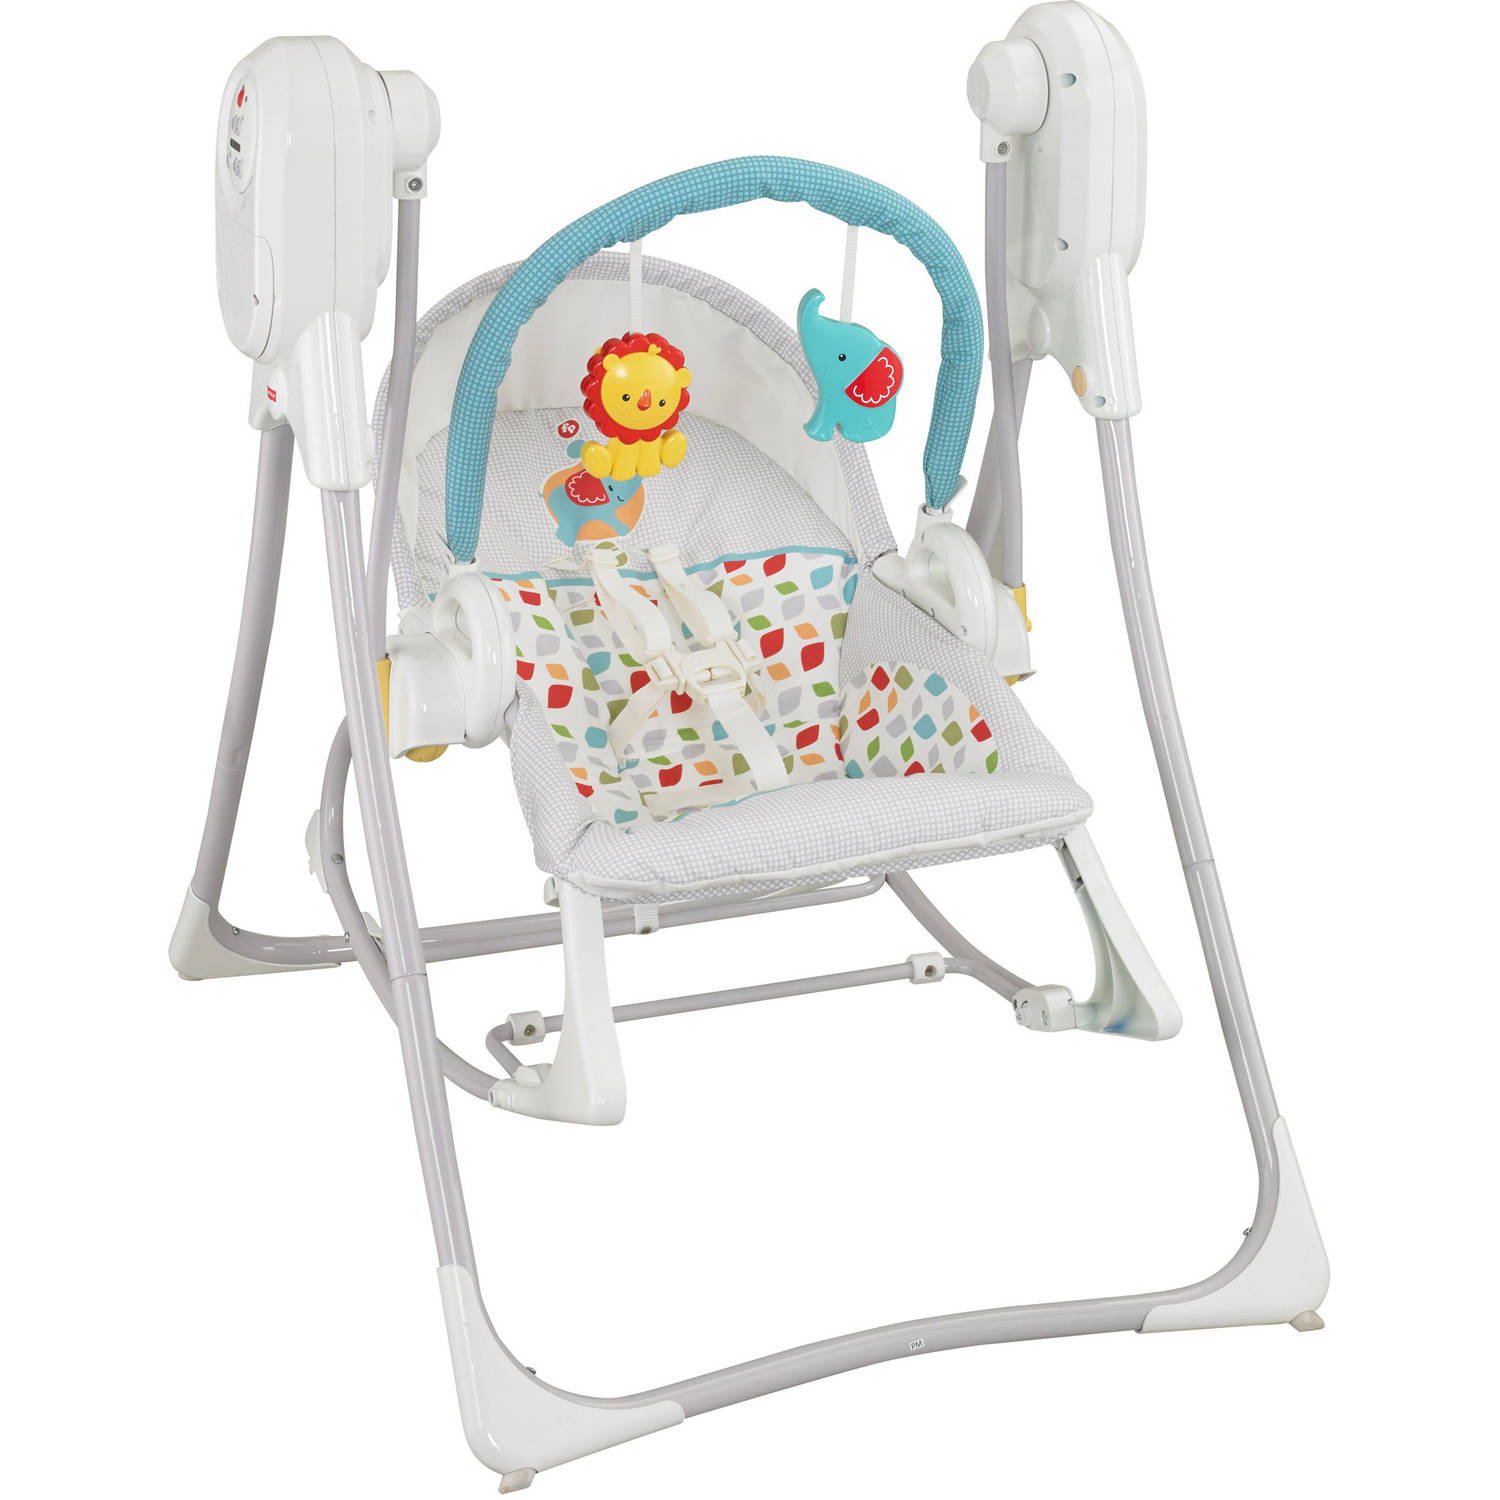 swing chair dragon mart wood kitchen table and chairs bright starts portable safari smiles walmart